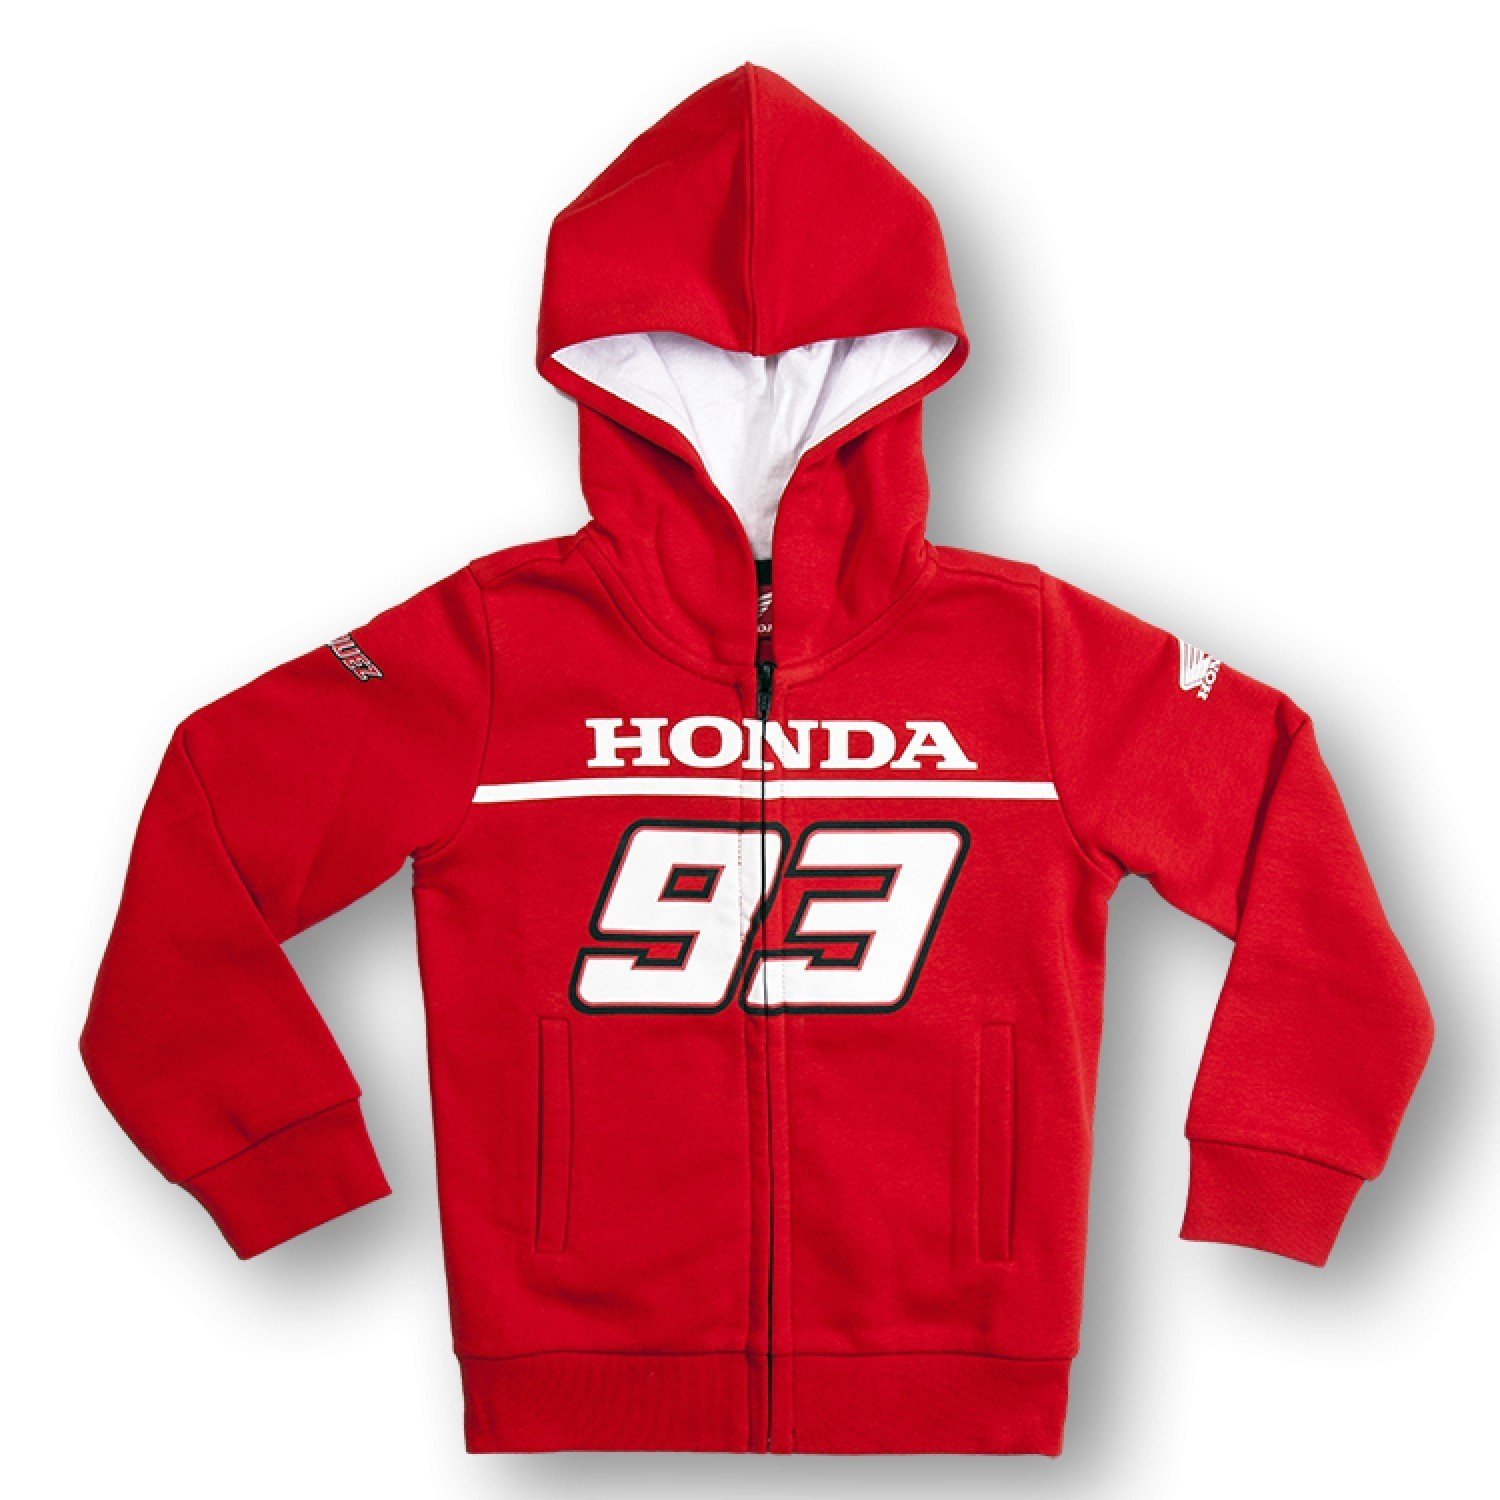 Marc marquez Hoodie Childrens Honda 93 Red 6-7 let